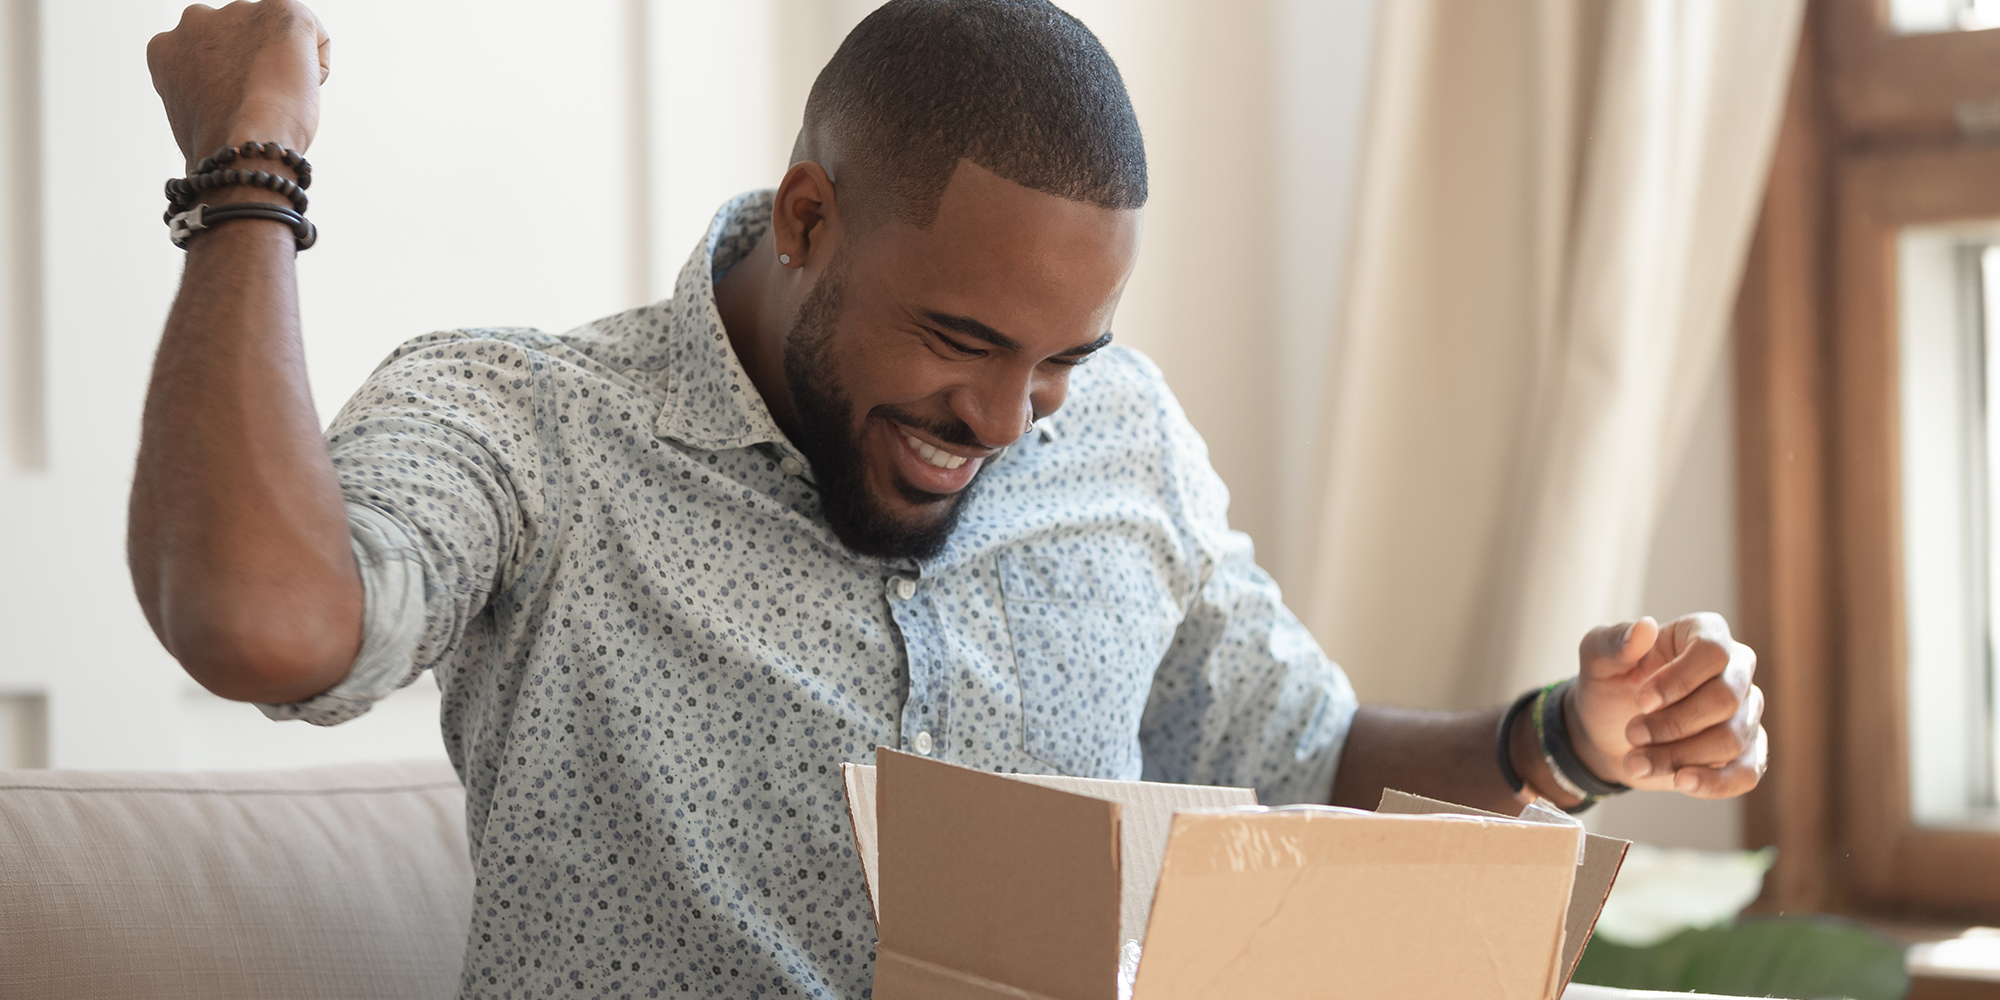 man excited to receive ecommerce package